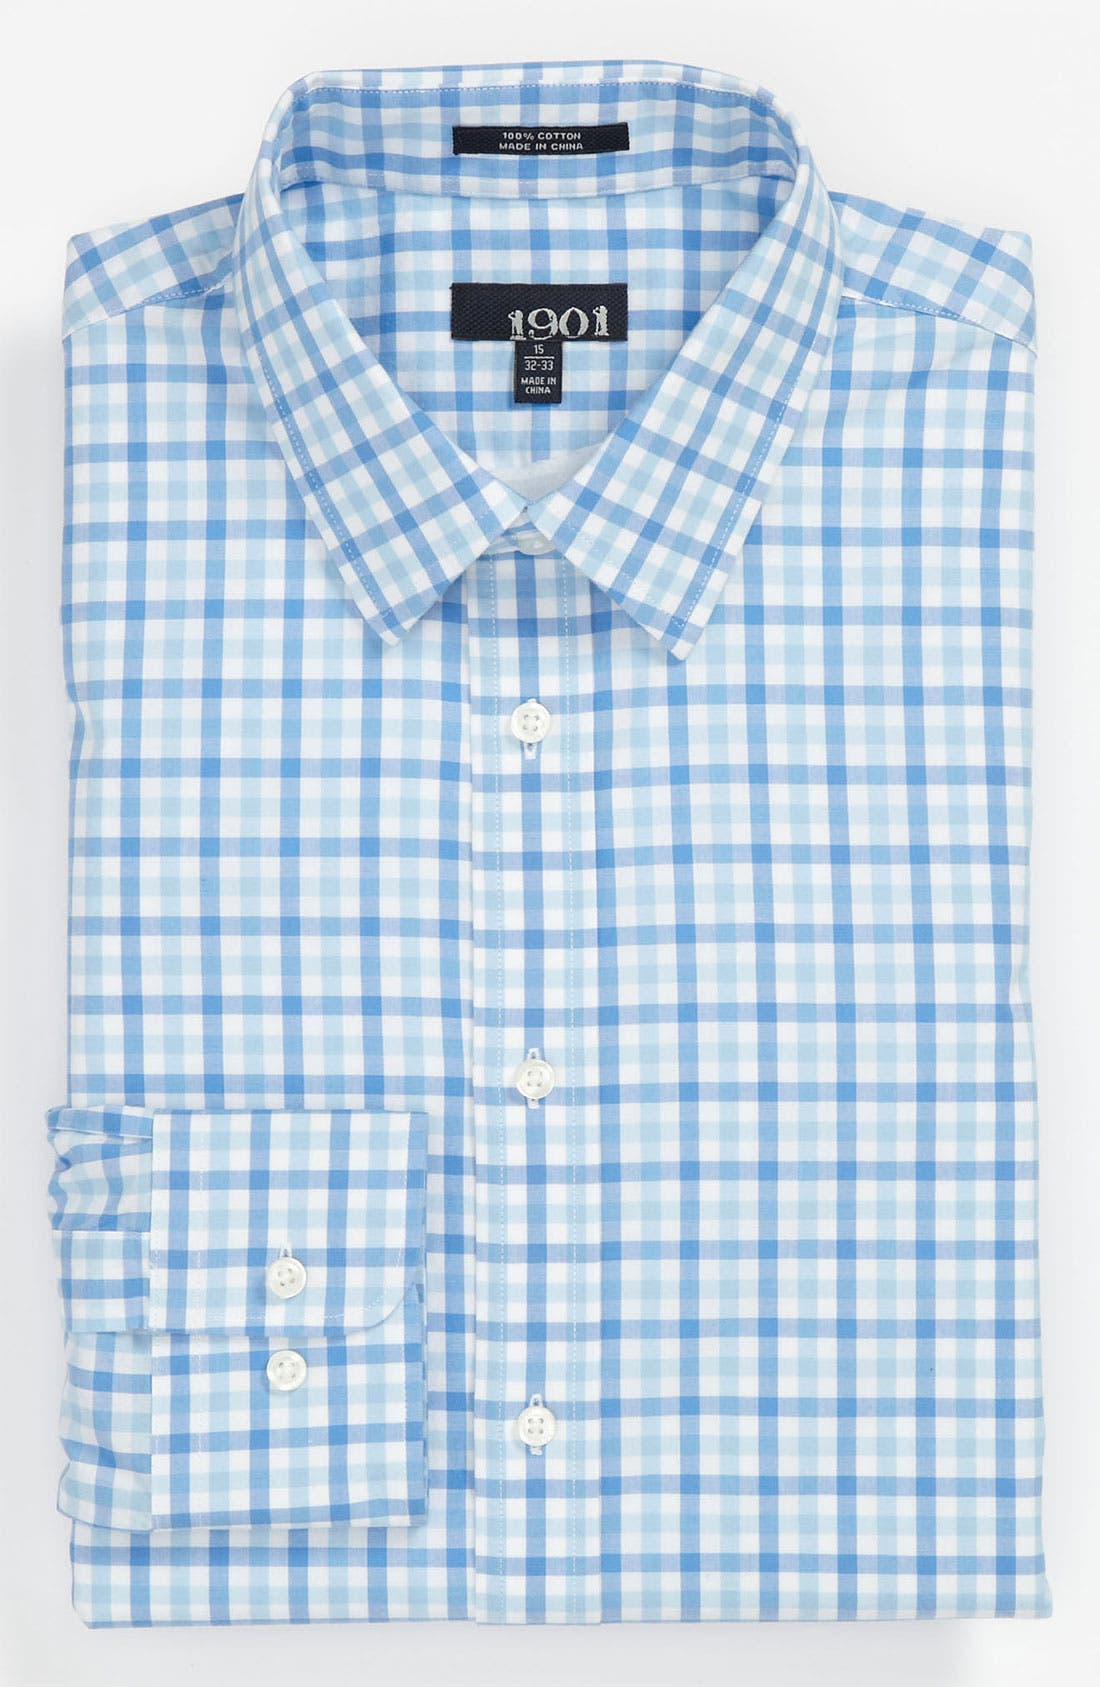 Main Image - 1901 Trim Fit Cotton Dress Shirt